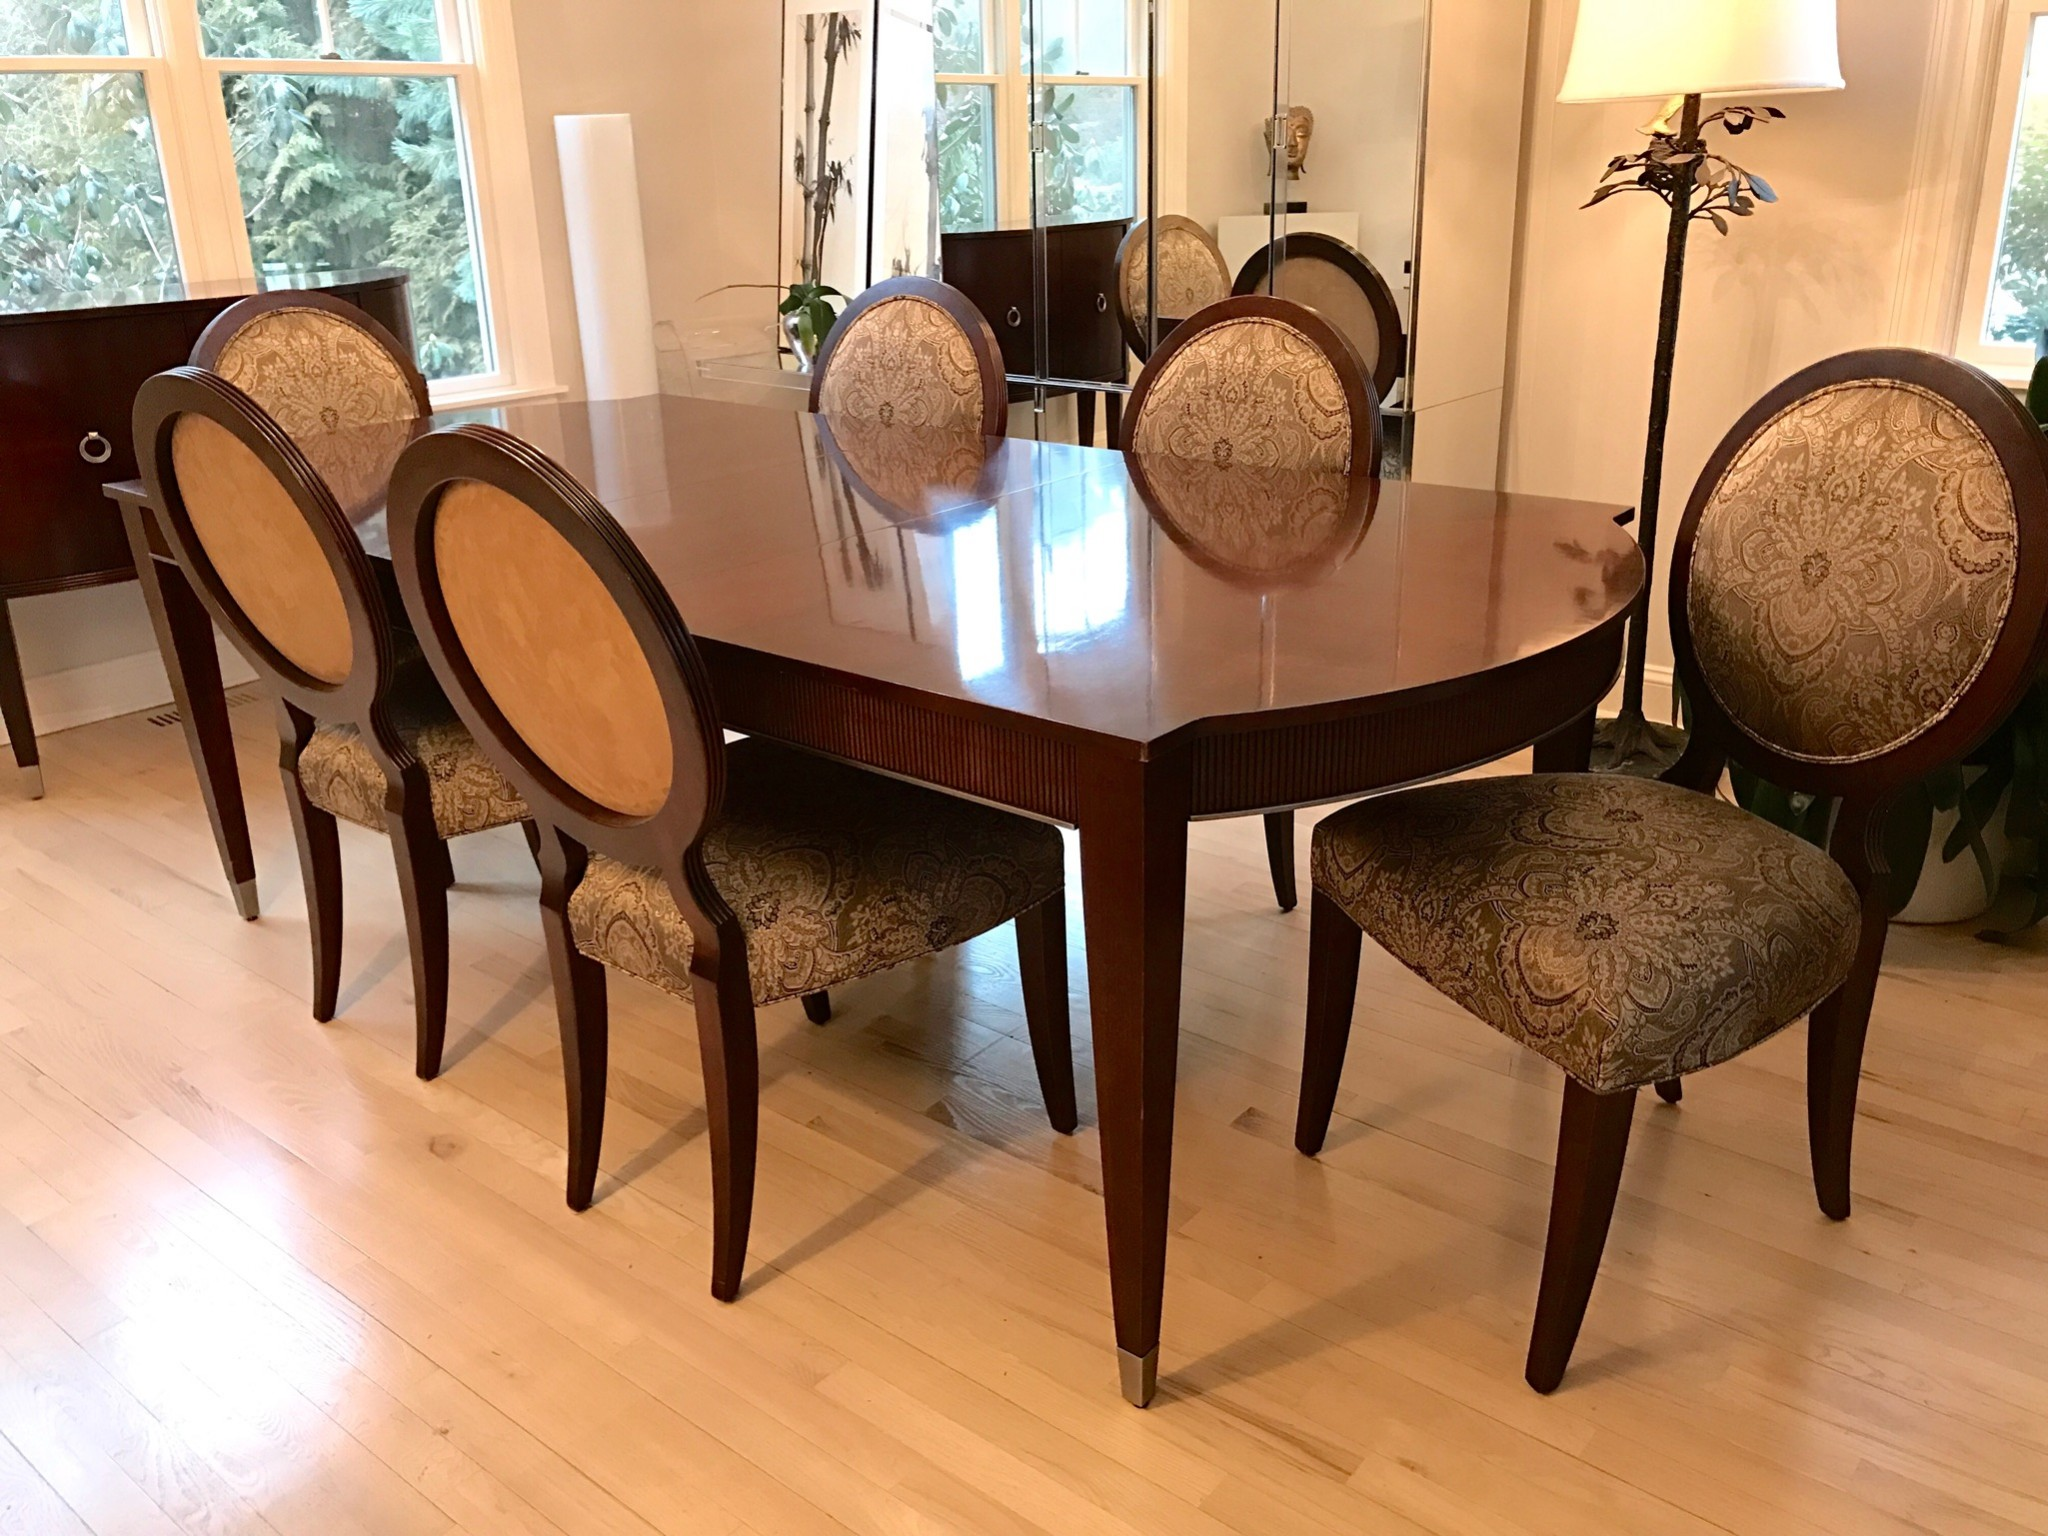 Ethan Allen Dining Room Furniture - For Sale at Watercress Springs ...